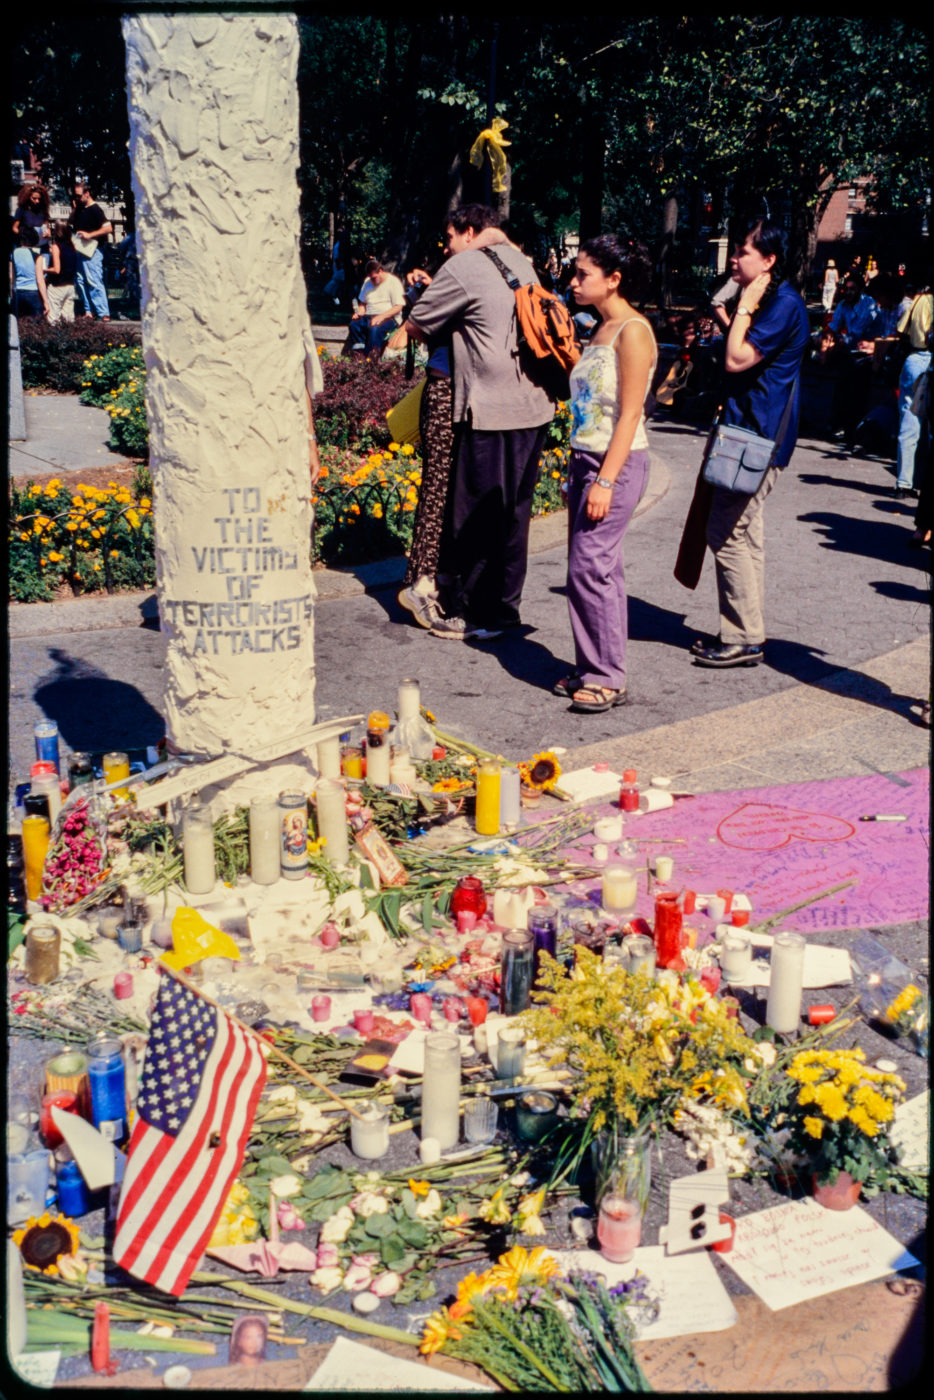 Two New Yorkers Embrace and Others Pass Near the Memorial at Union Square Park.jpg